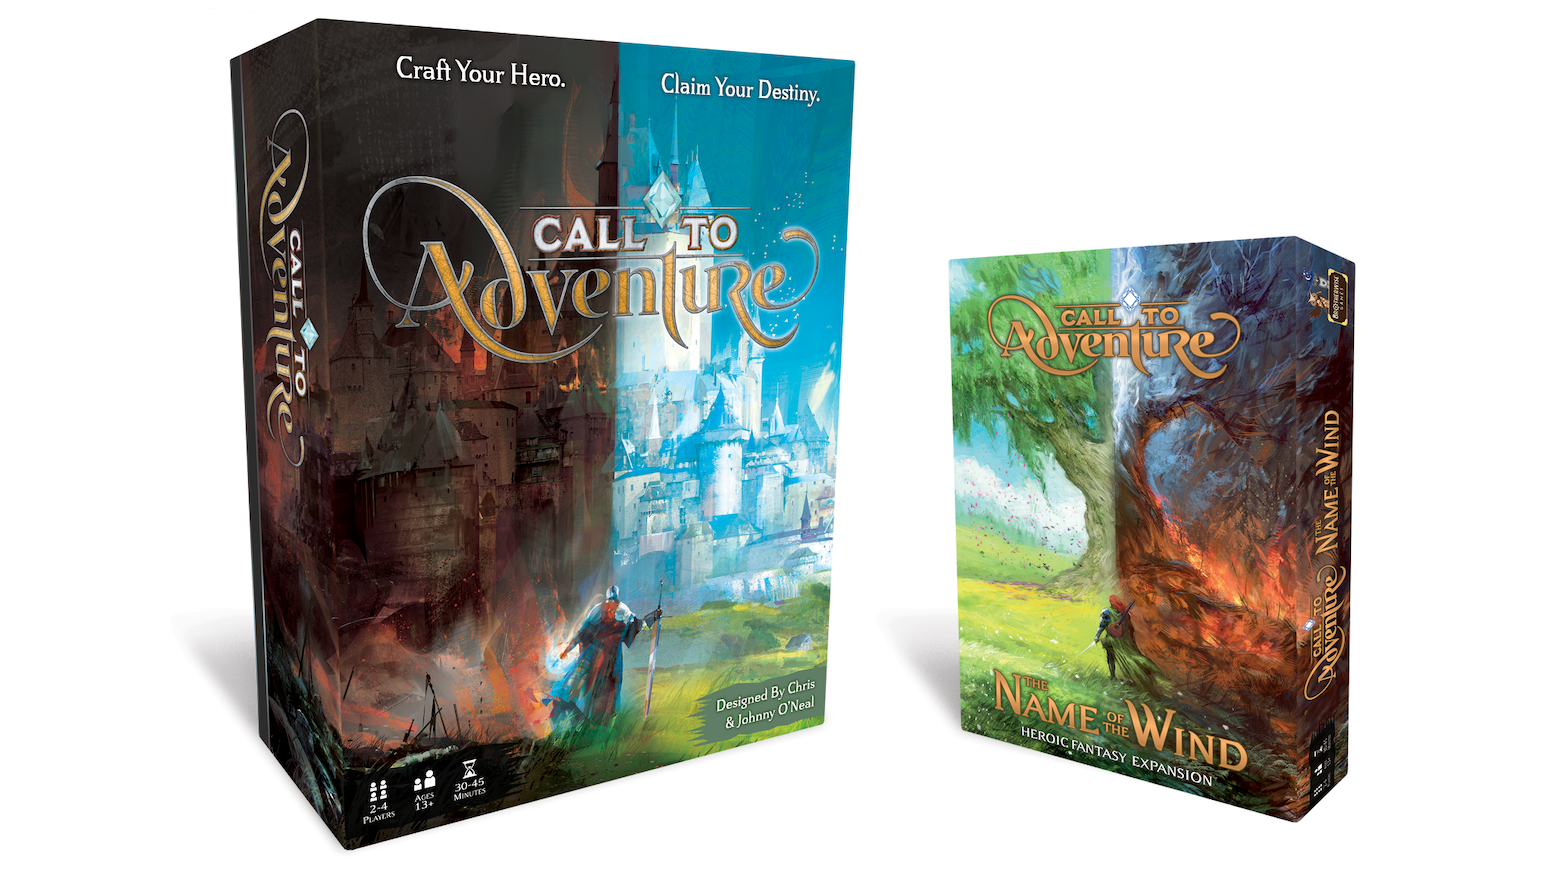 Call To Adventure Featuring Name Of The Wind